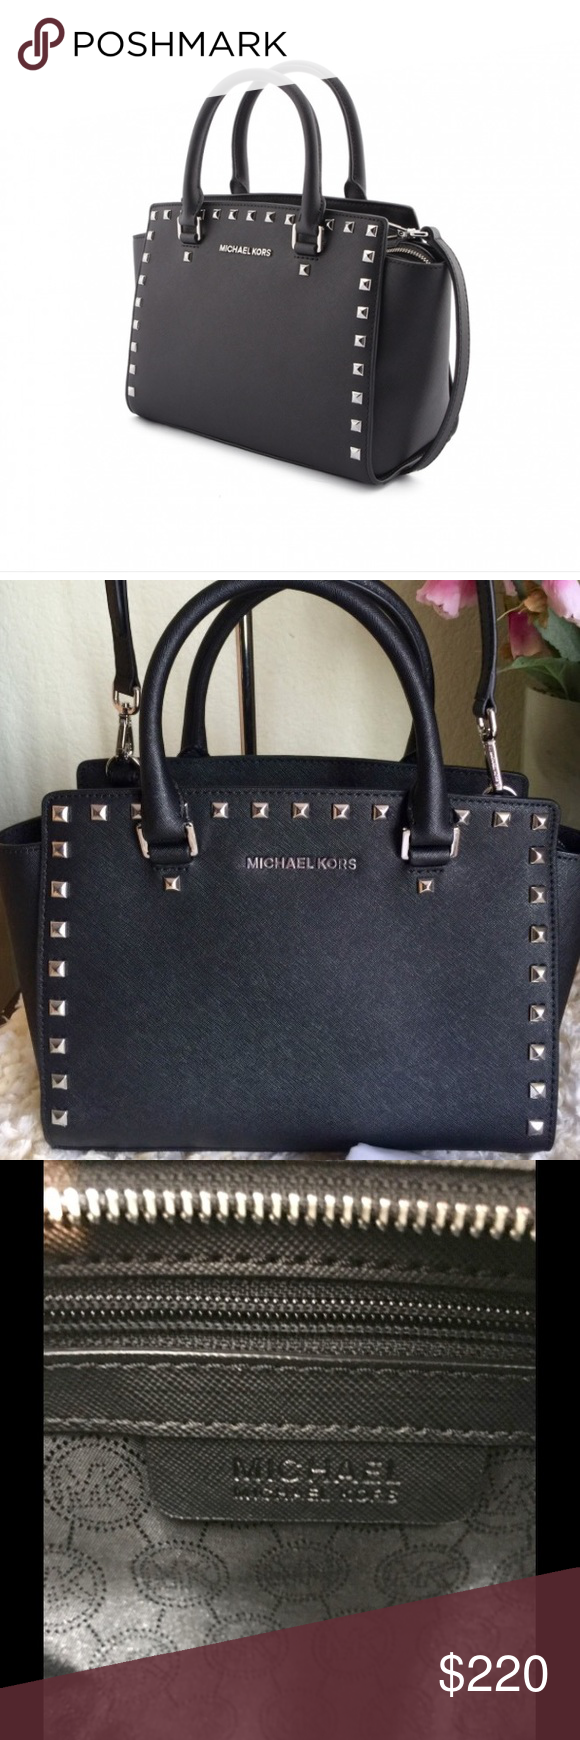 7c60b062aed3 💯Authentic Michael Kors Selma Studded Satchel Michael Kors Studded Medium Leather  Satchel in Black